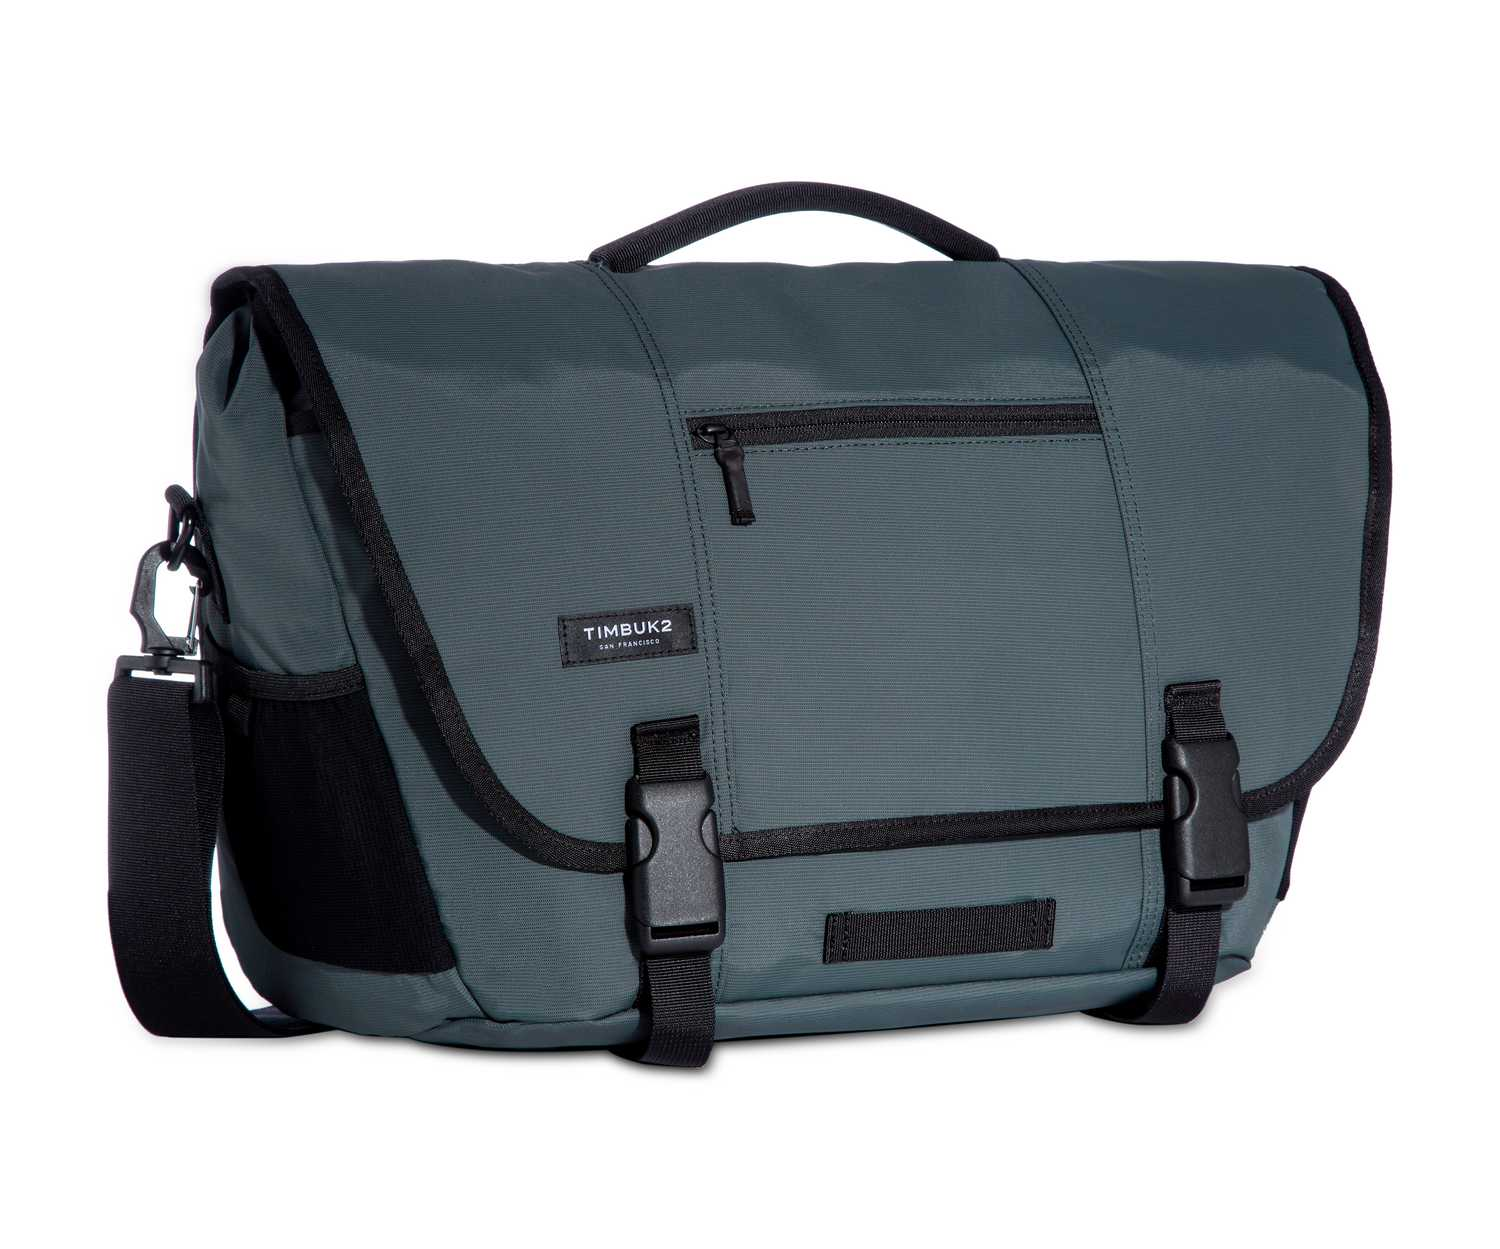 Timbuk2 208 - Commute Messenger Bag